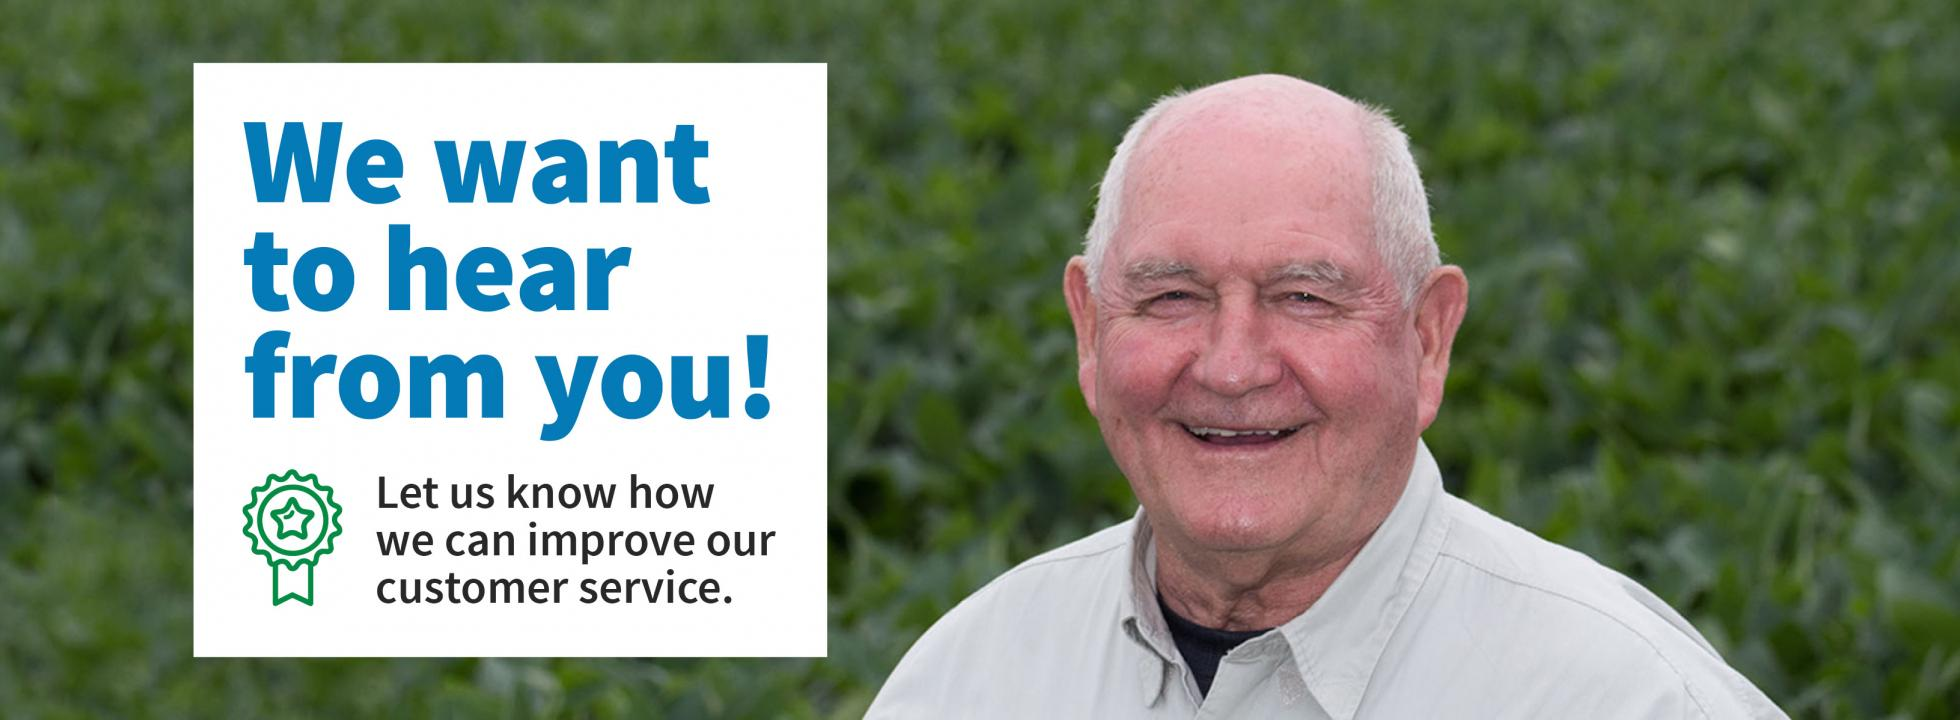 We want to hear from you! Let us know how we can improve our customer service.